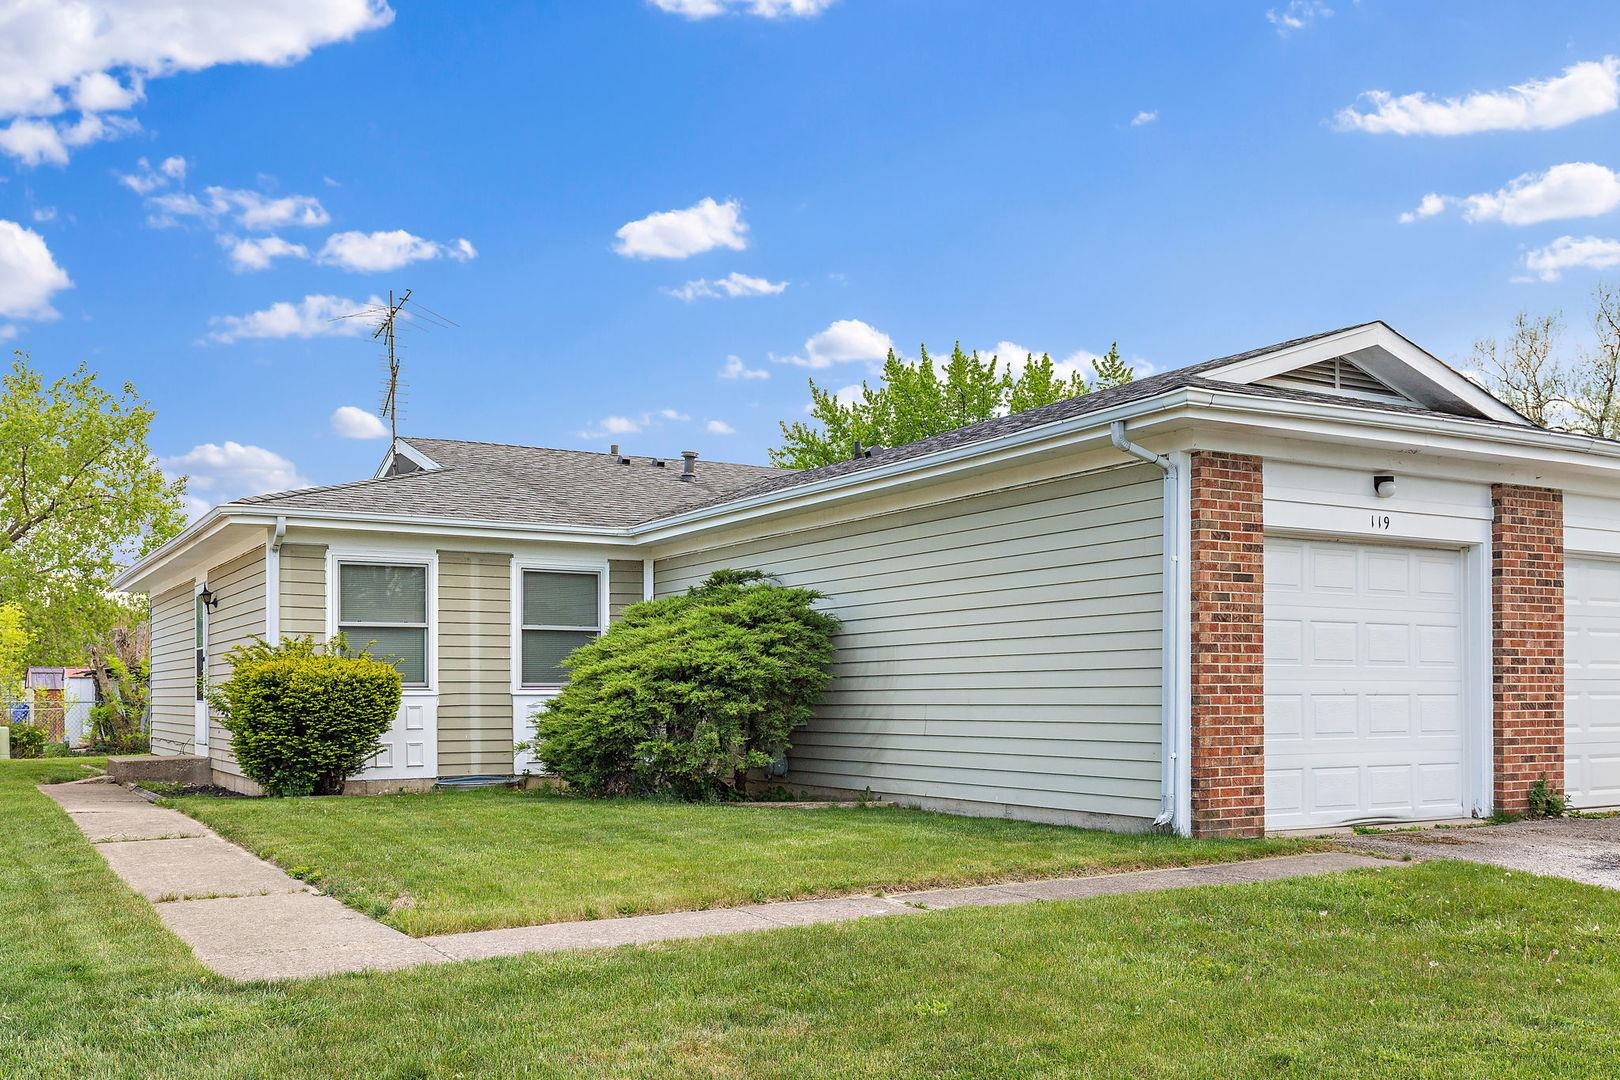 119 Golden Drive, Glendale Heights, IL 60139 - #: 11089294